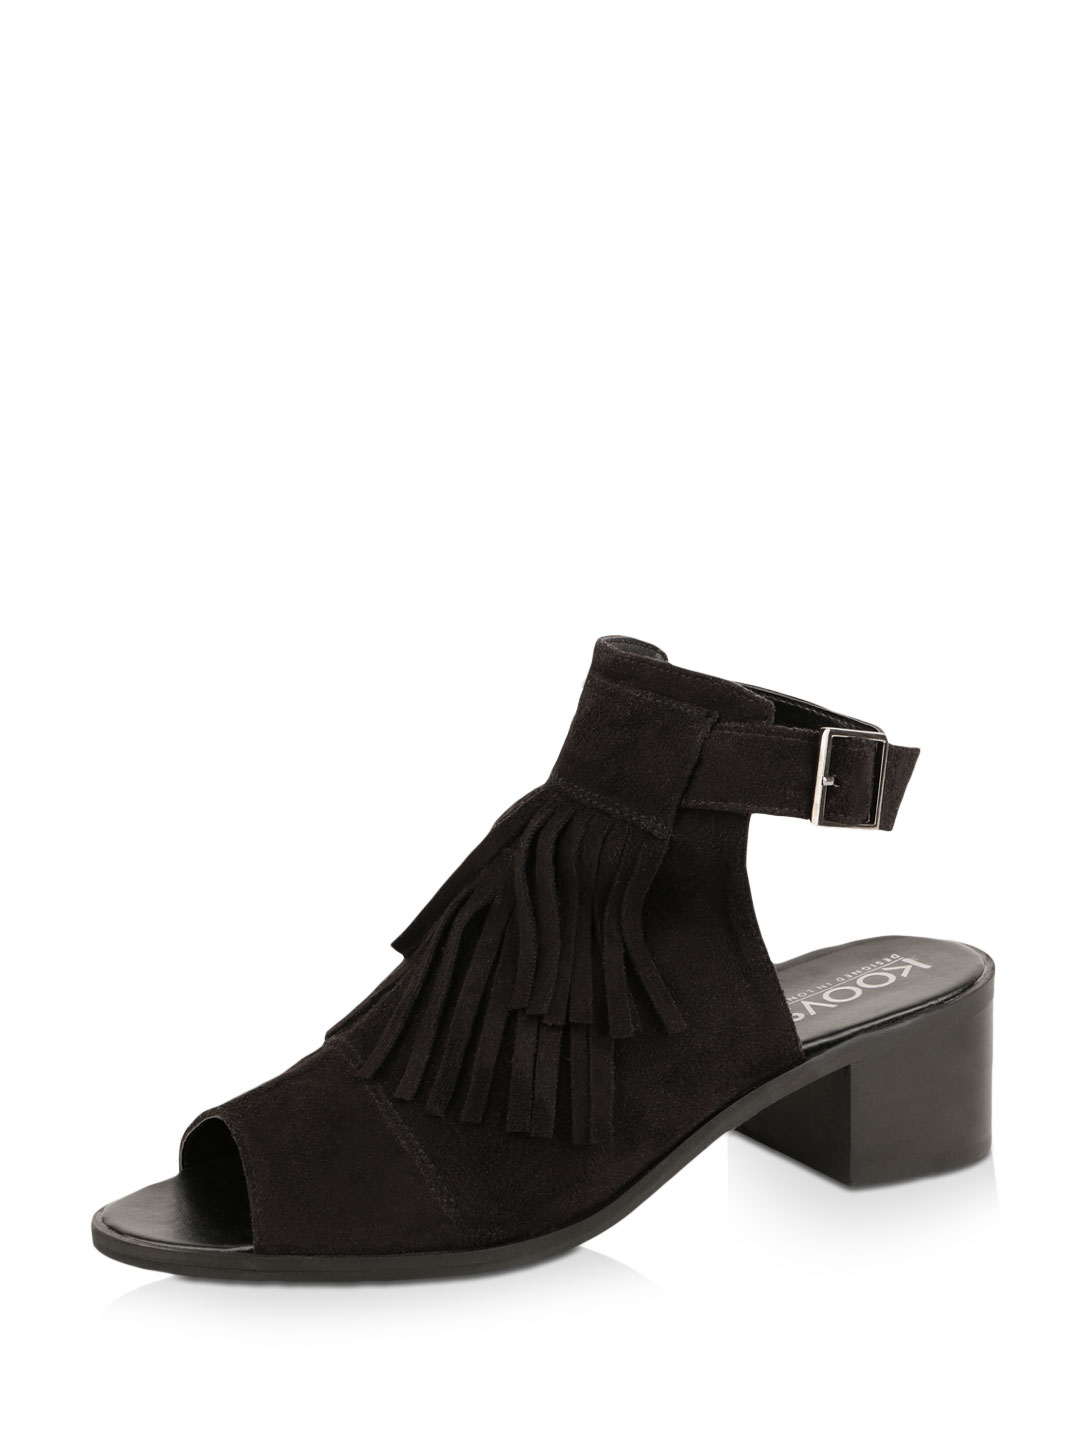 KOOVS Black Fringed Front Sandals On Low Block Heels 1